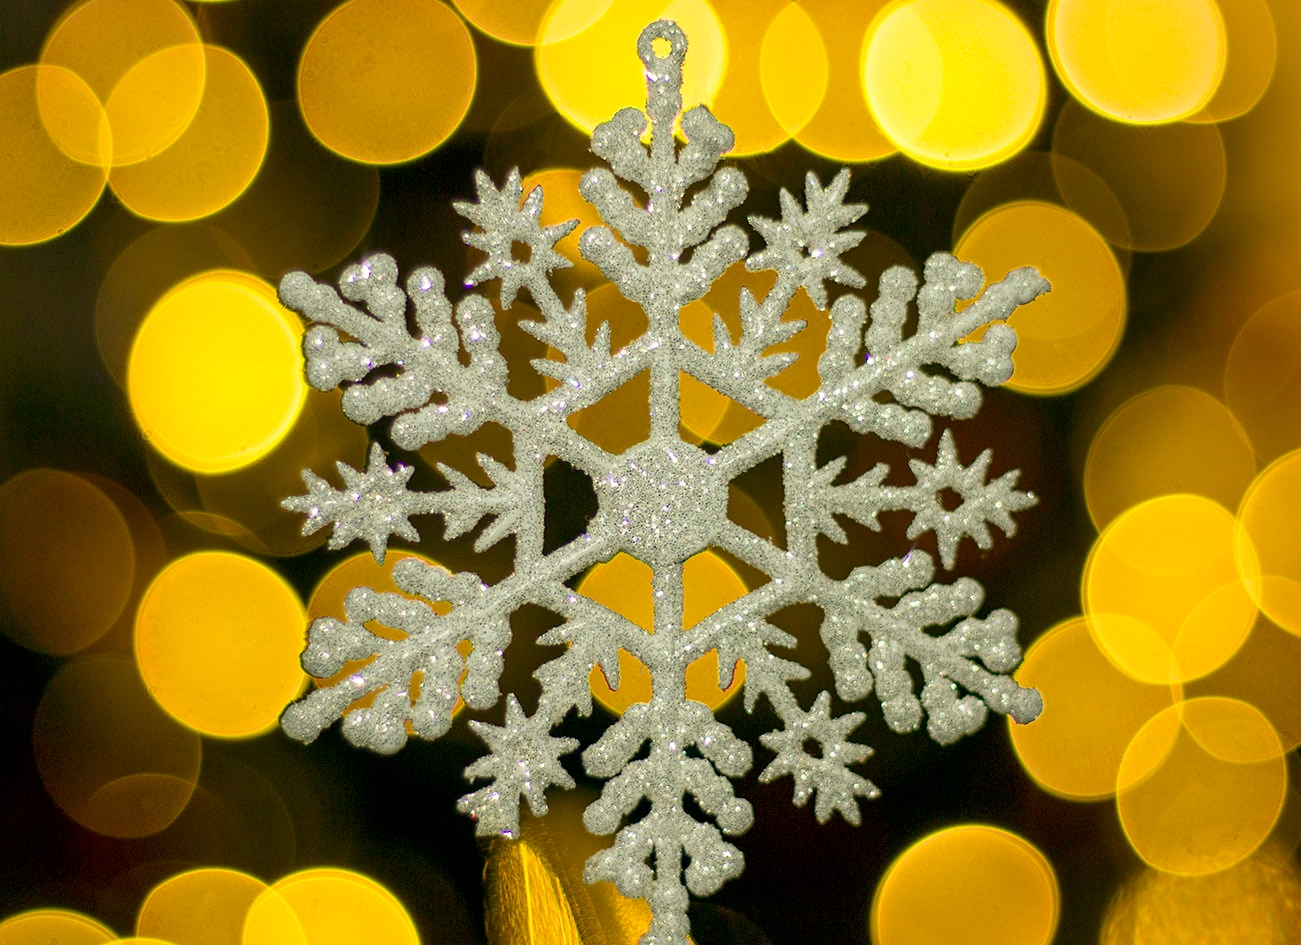 Yellow-Snowflakes-Bokeh-Background